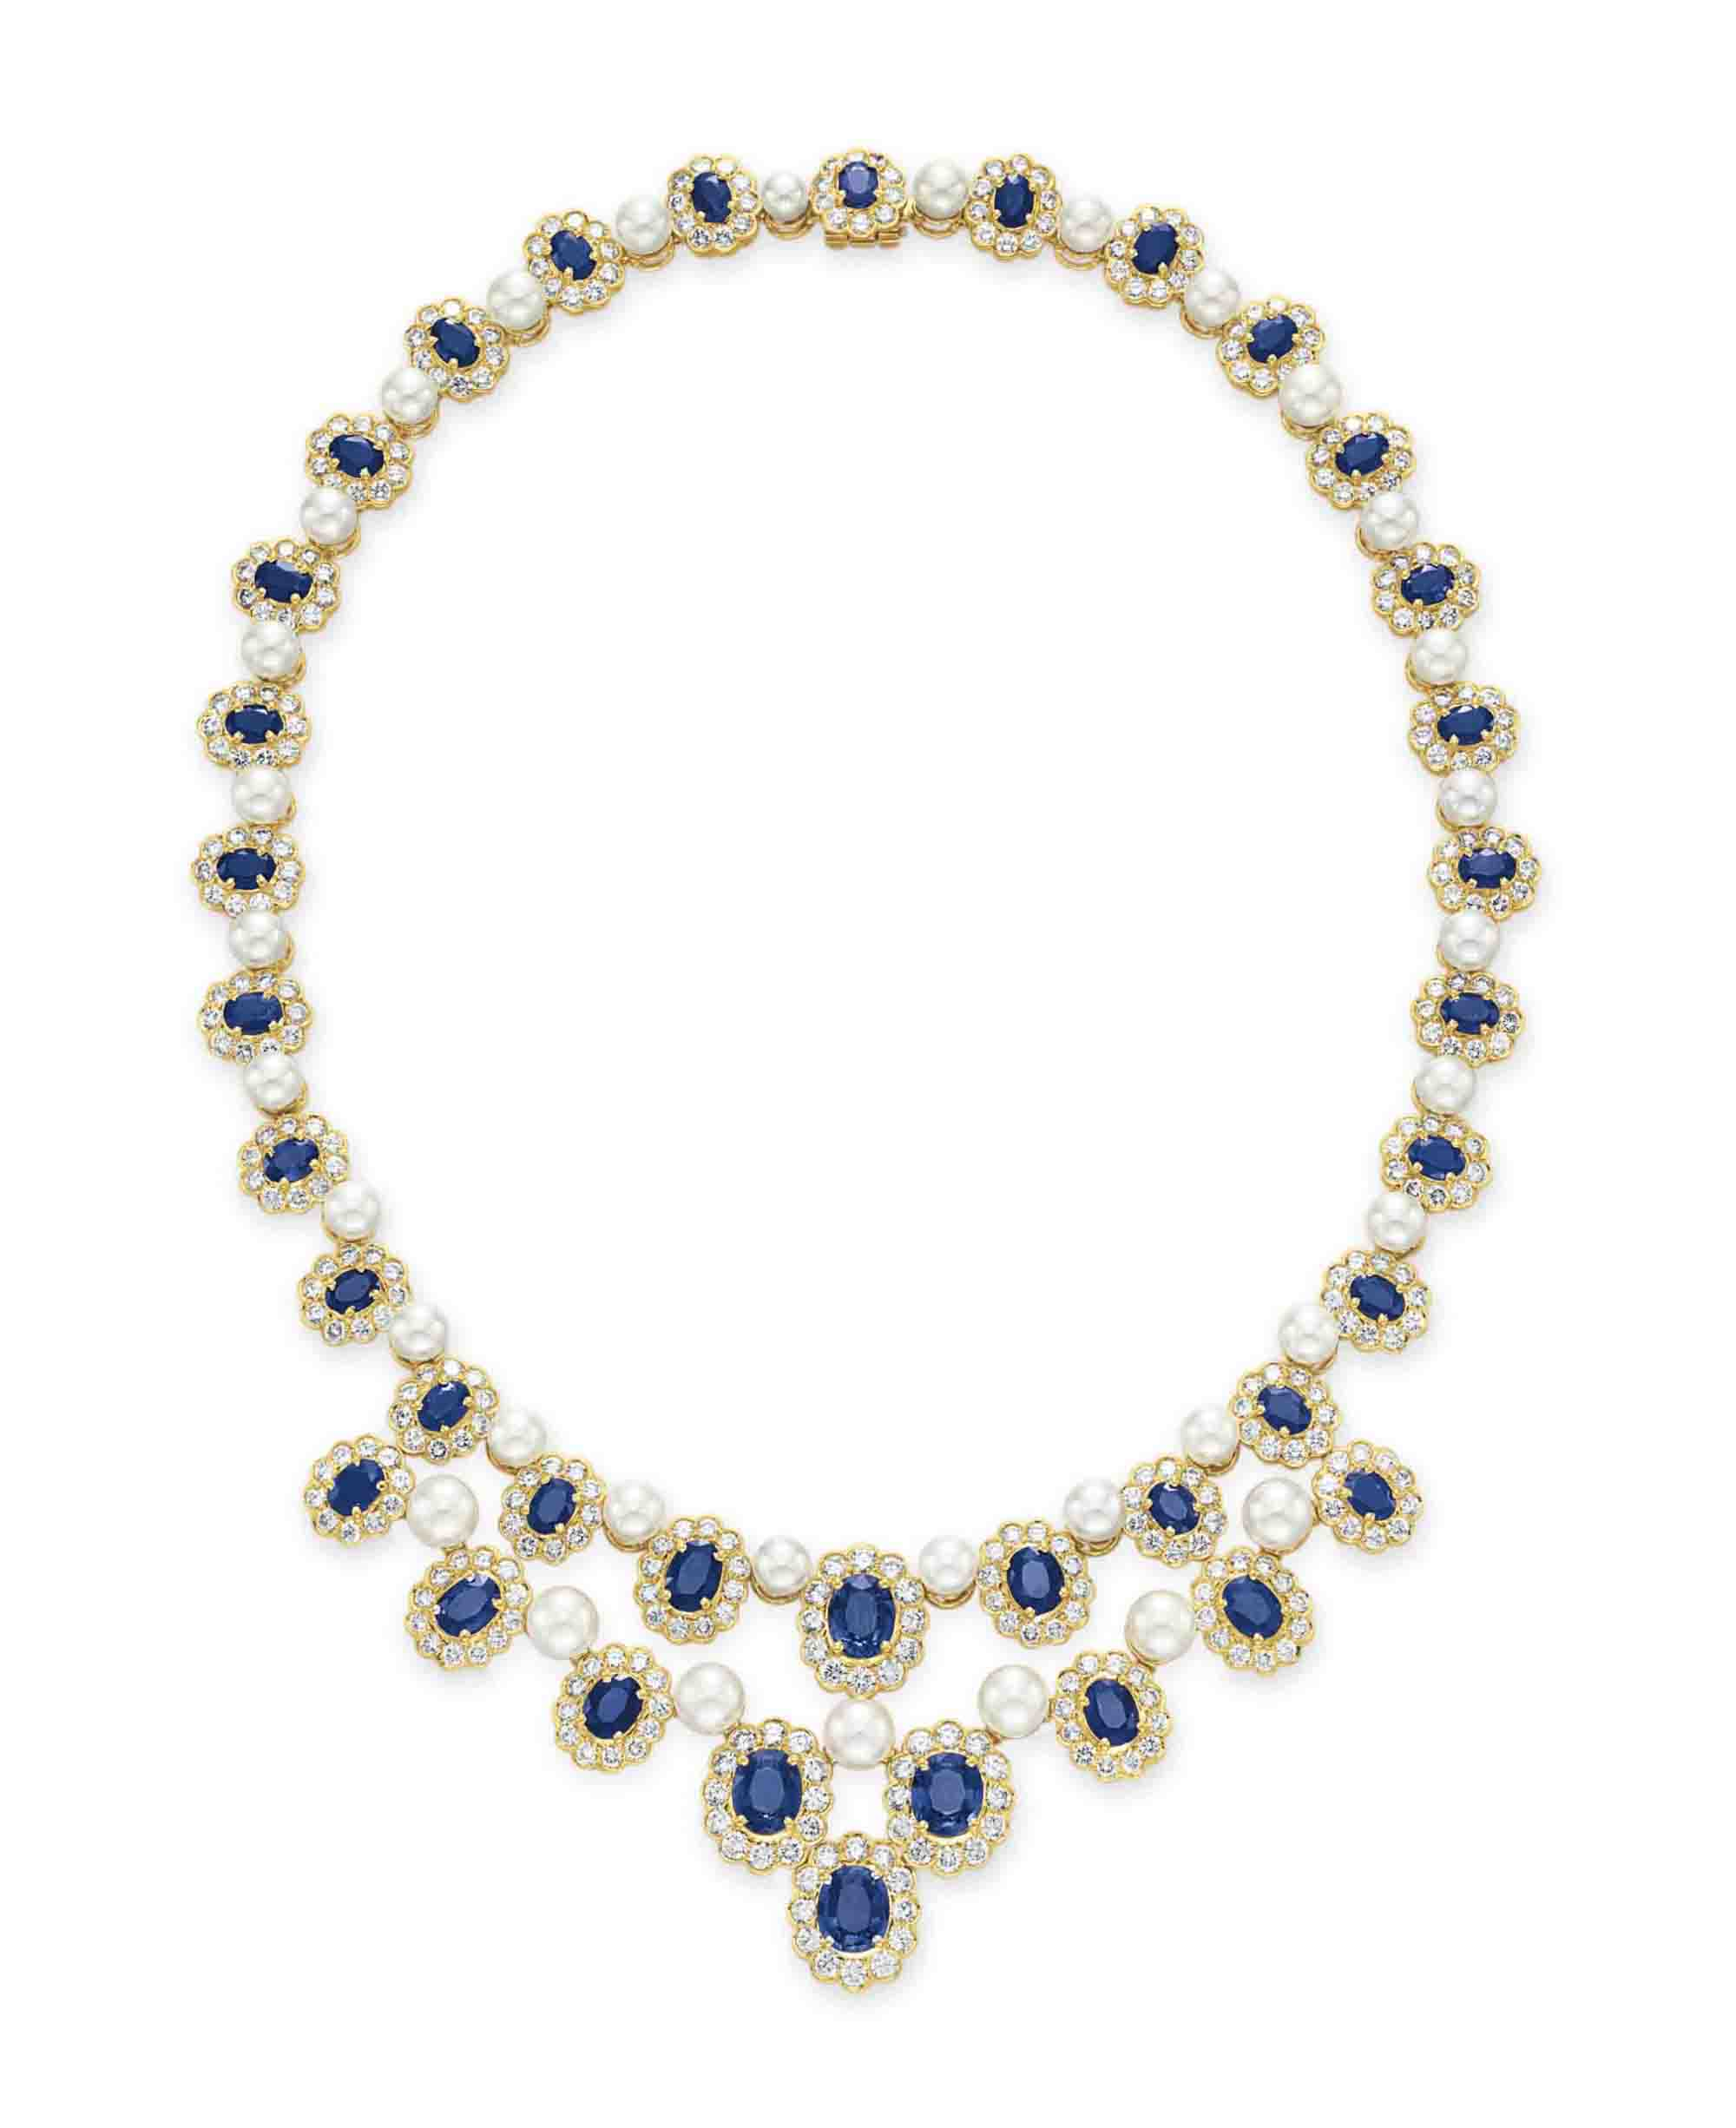 A SAPPHIRE, DIAMOND AND CULTURED PEARL NECKLACE, BY HAMMERMAN BROTHERS